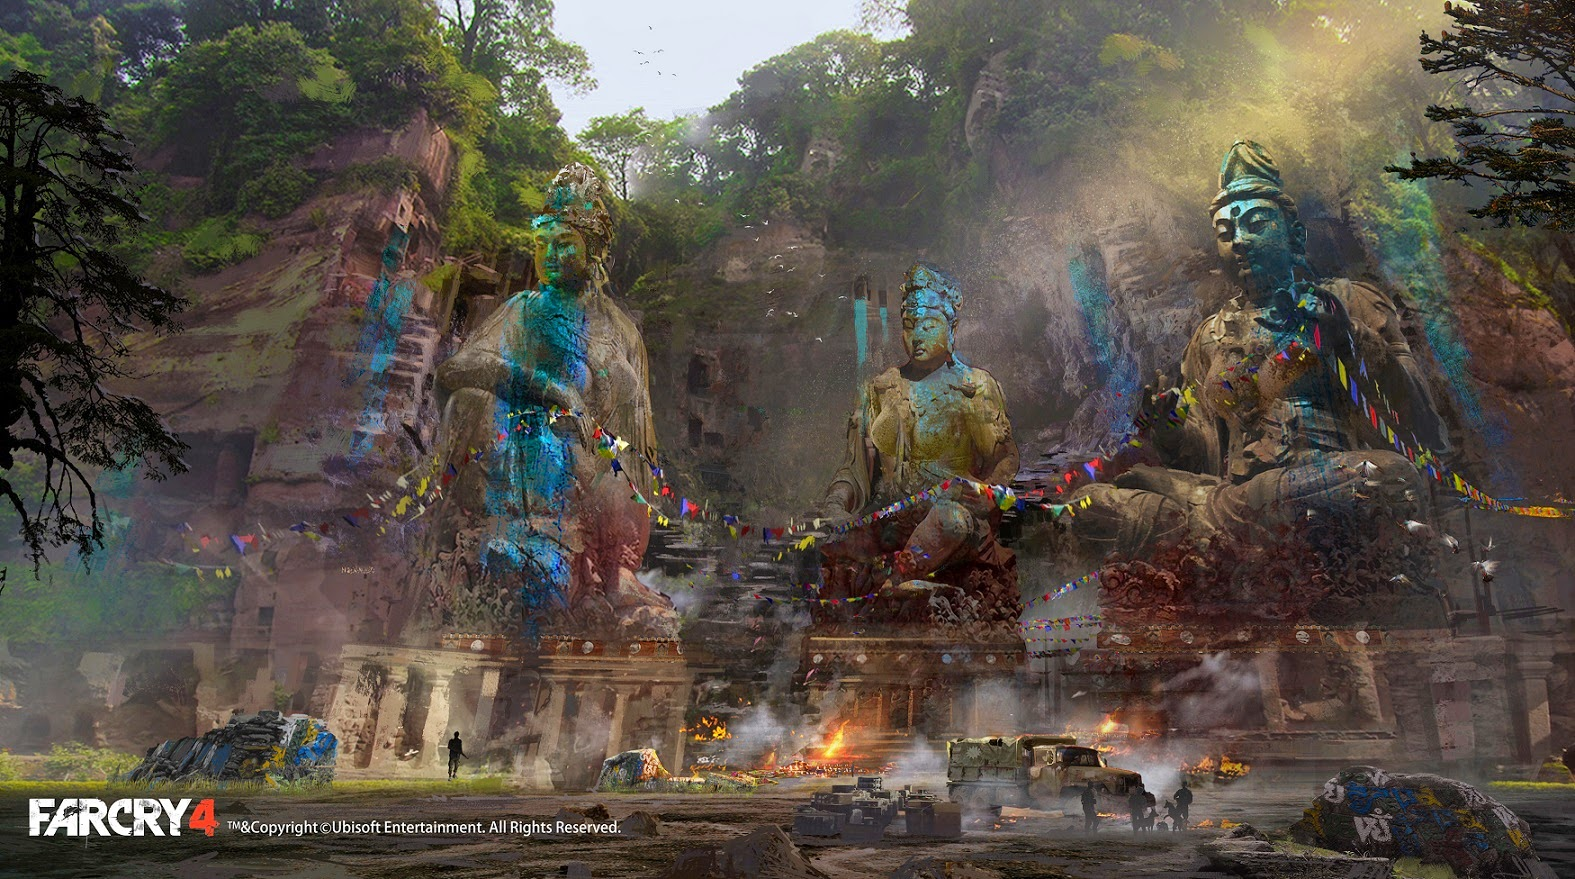 far cry 4 concept art 7